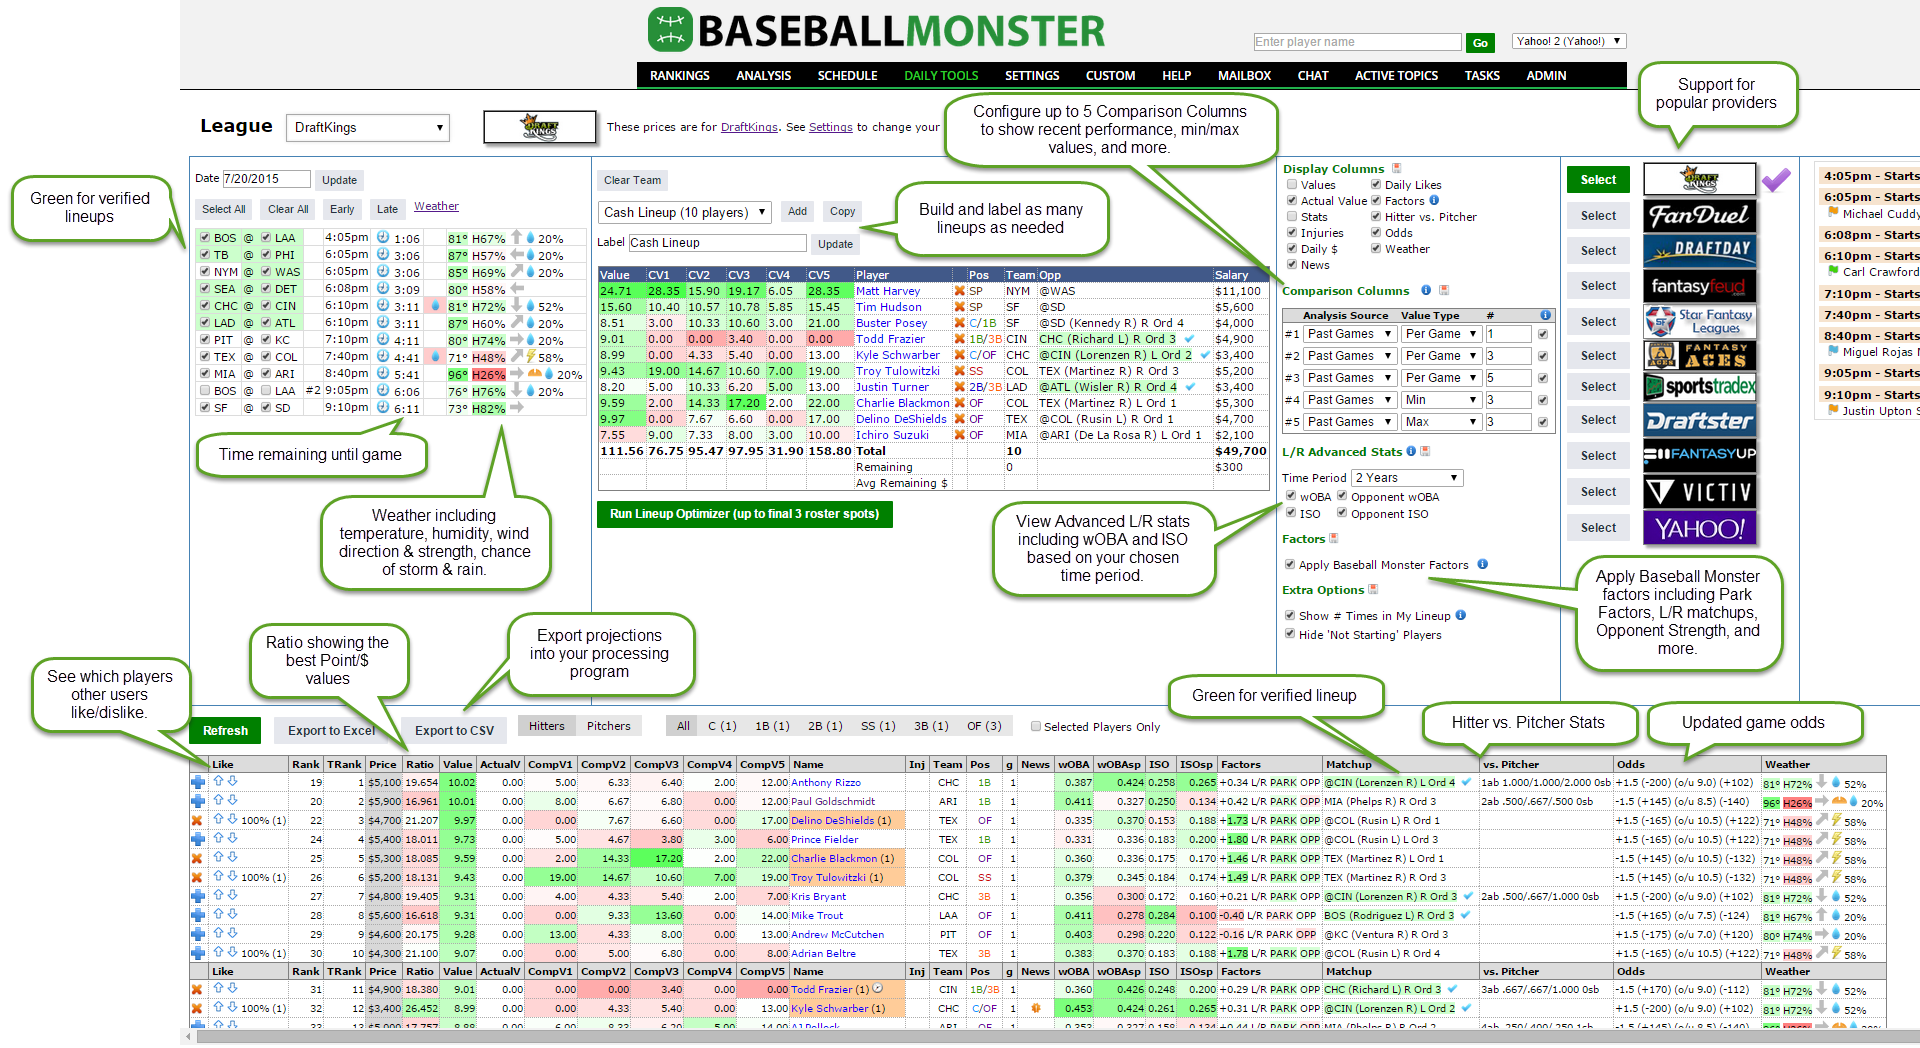 Baseball Monster DFS screenshot